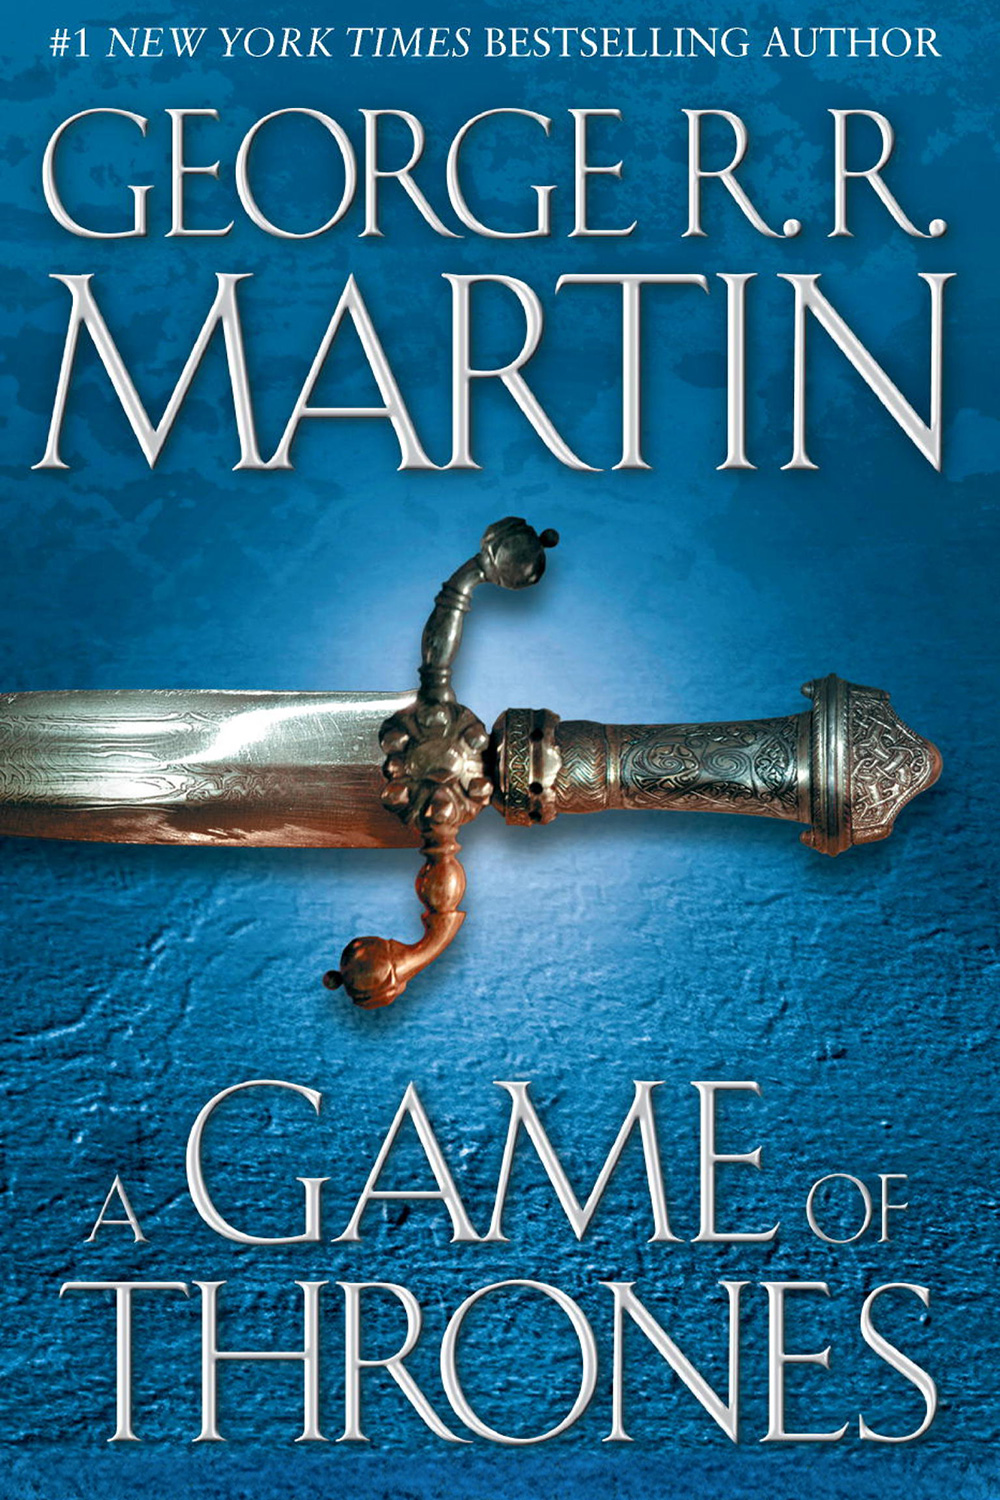 A-Game-Of-Thrones_novel.jpg